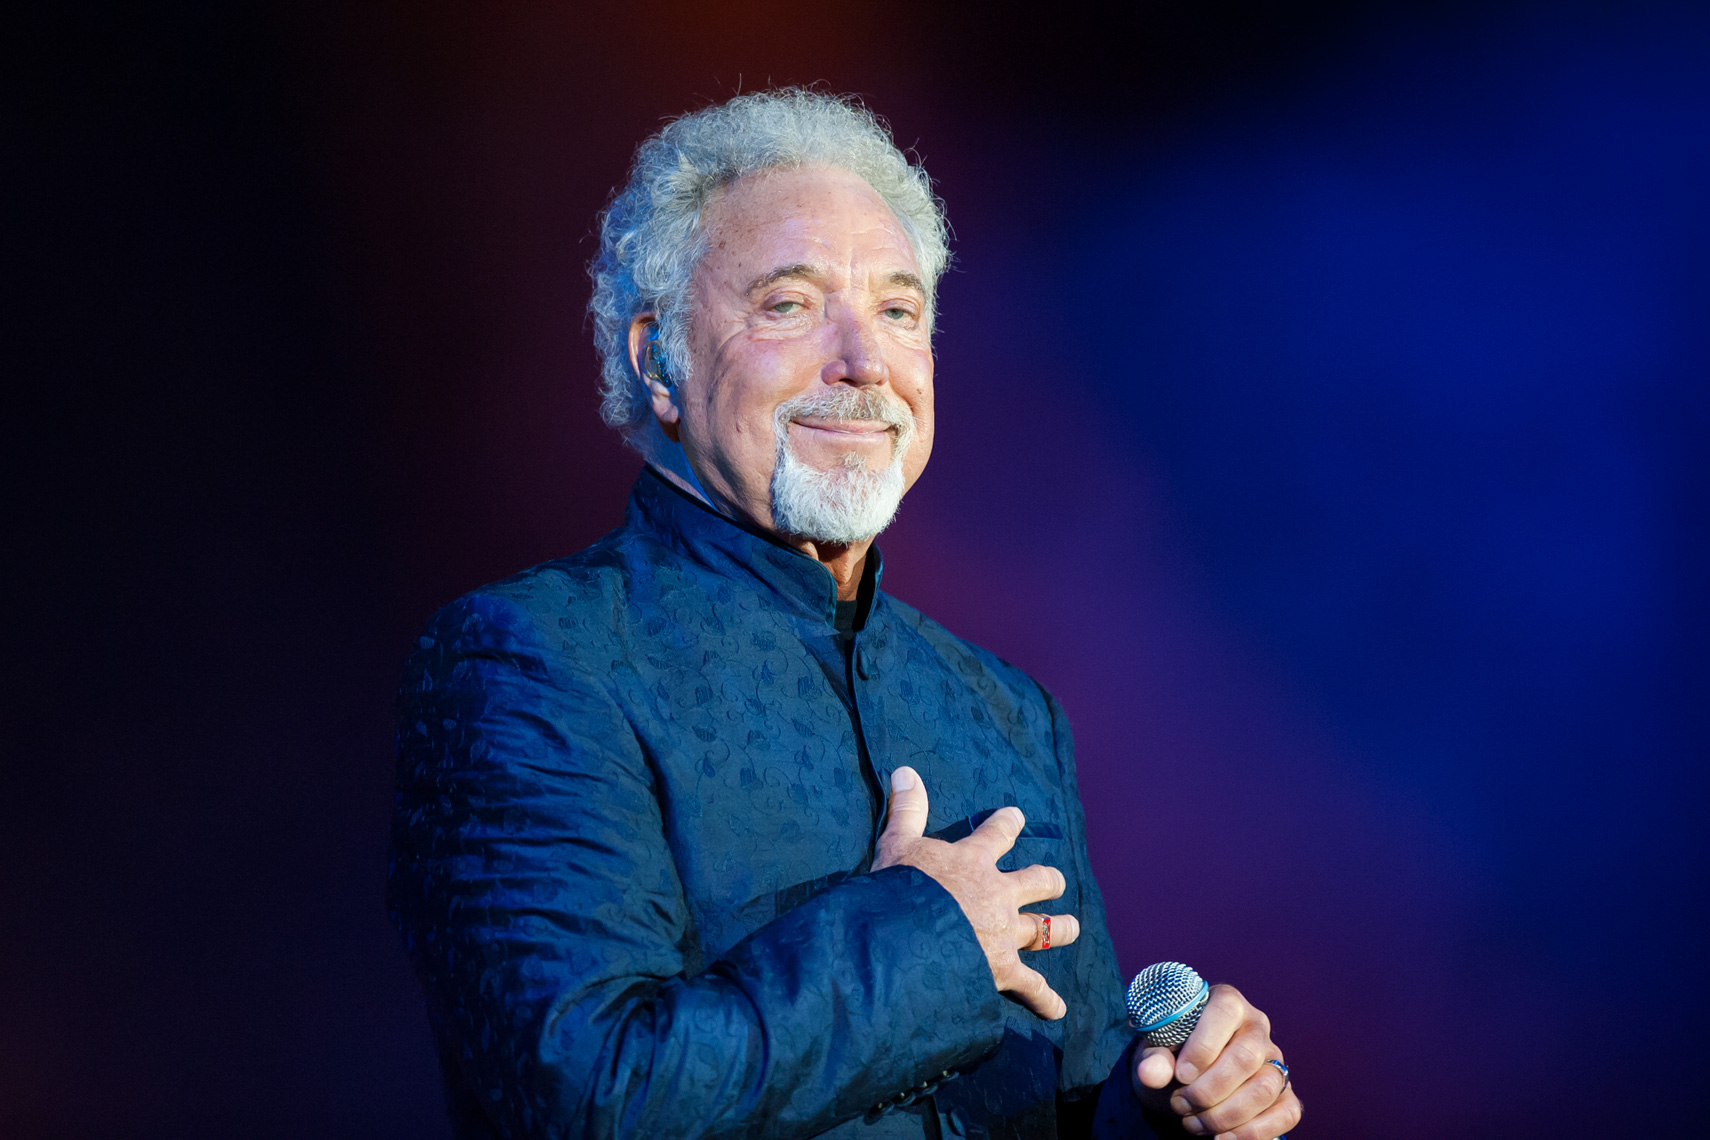 Tom-Jones-Hyde-Park.jpg